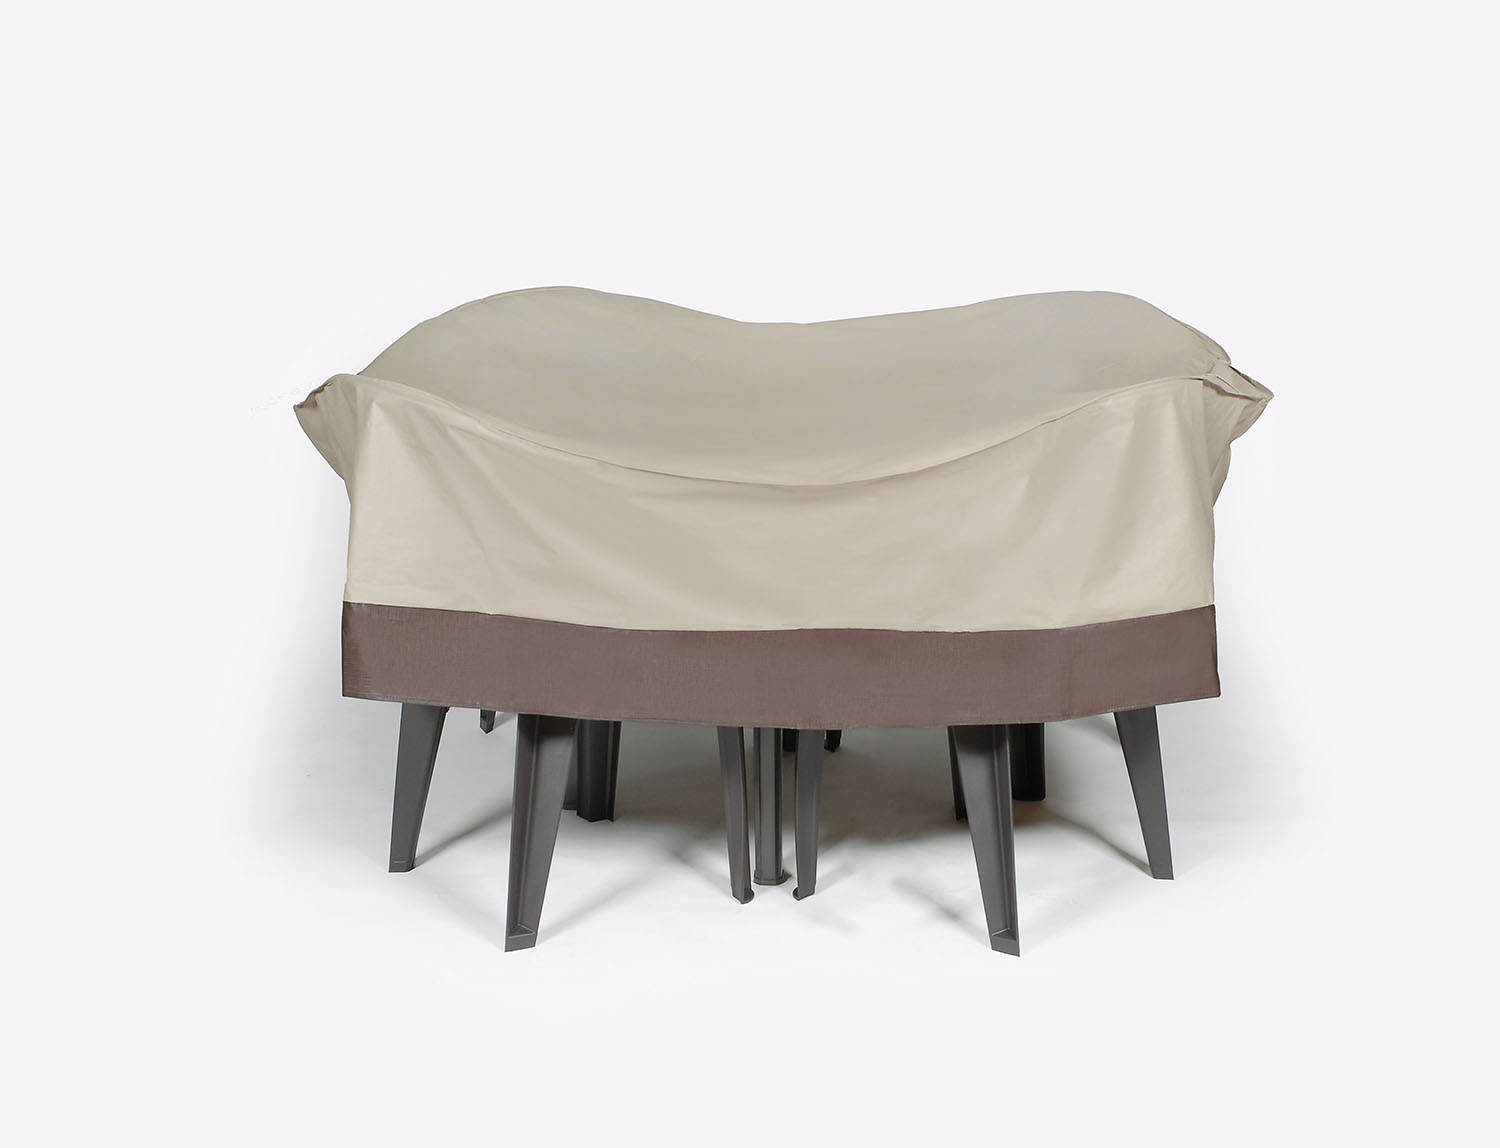 72 beige and brown durable outdoor round patio furniture set vinyl cover